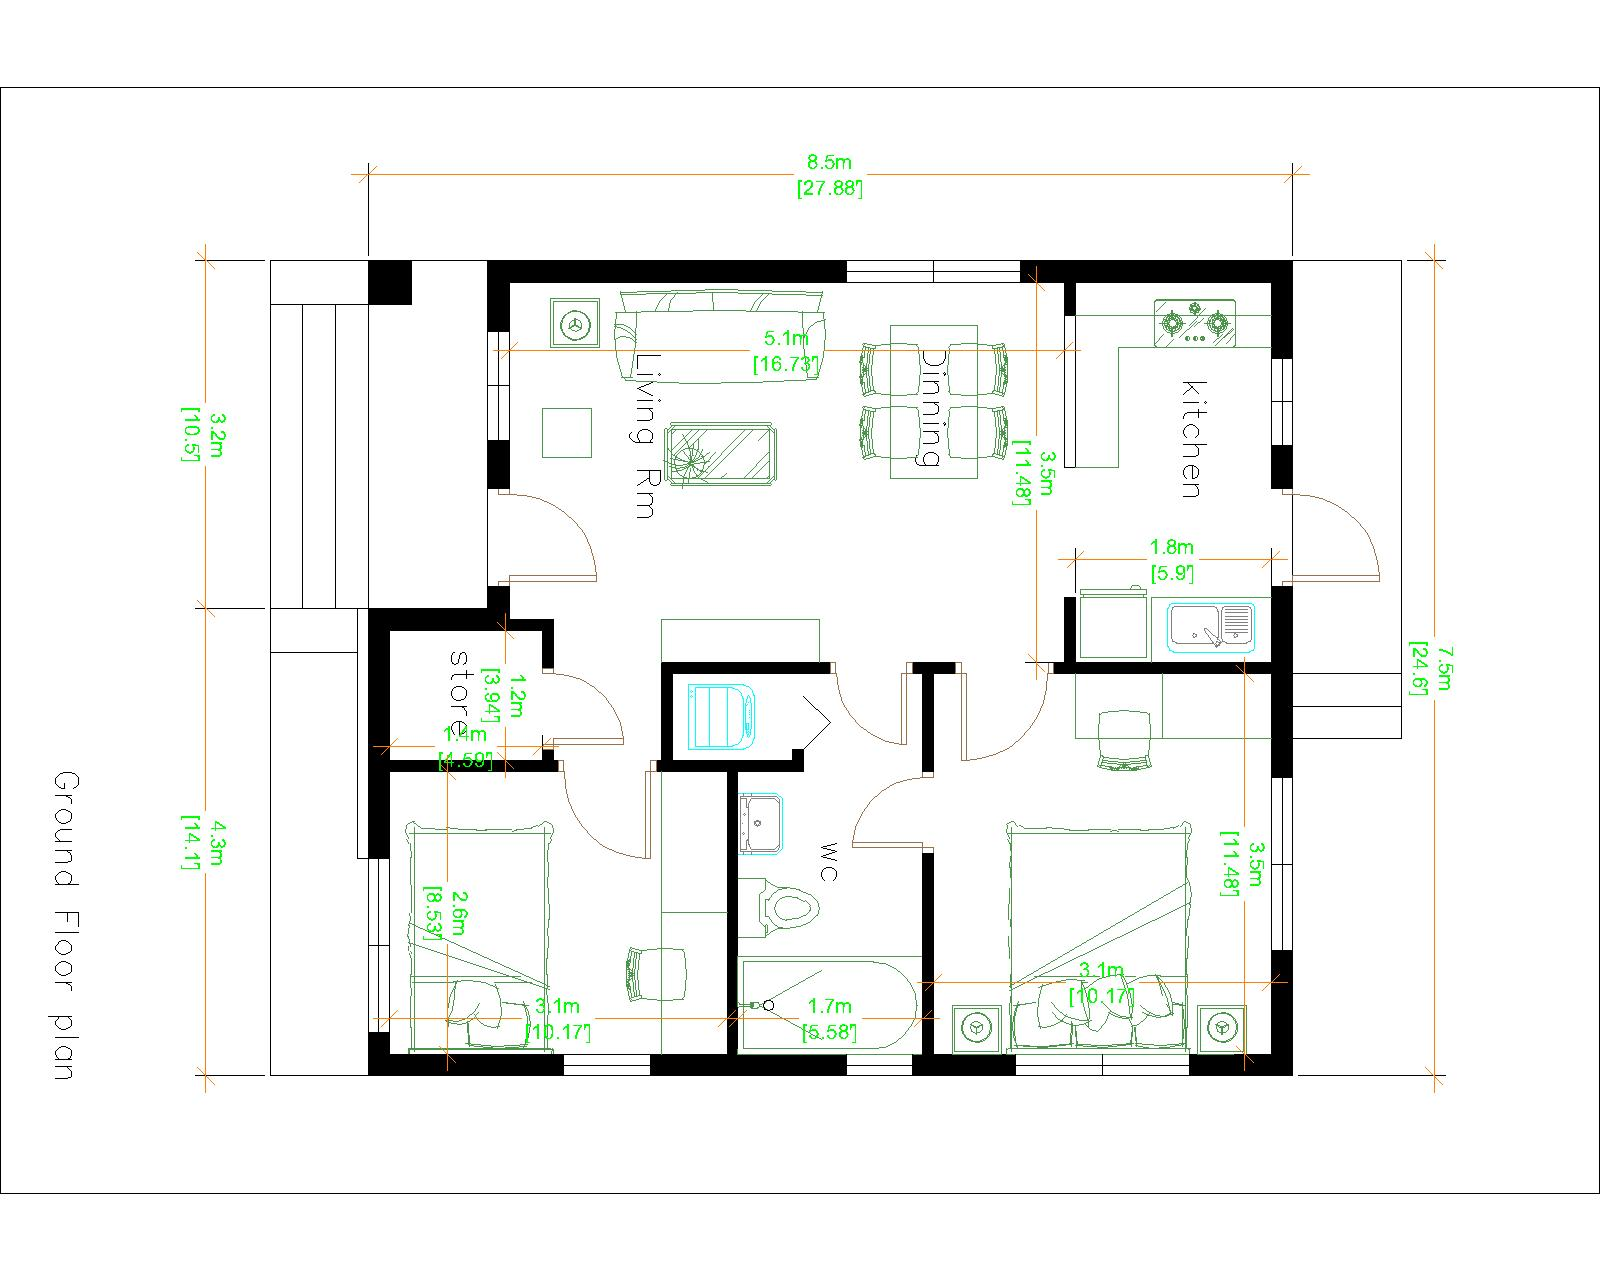 House plans 7.5x8.5m with 2 bedrooms 25x29 Feet Layout floor plan